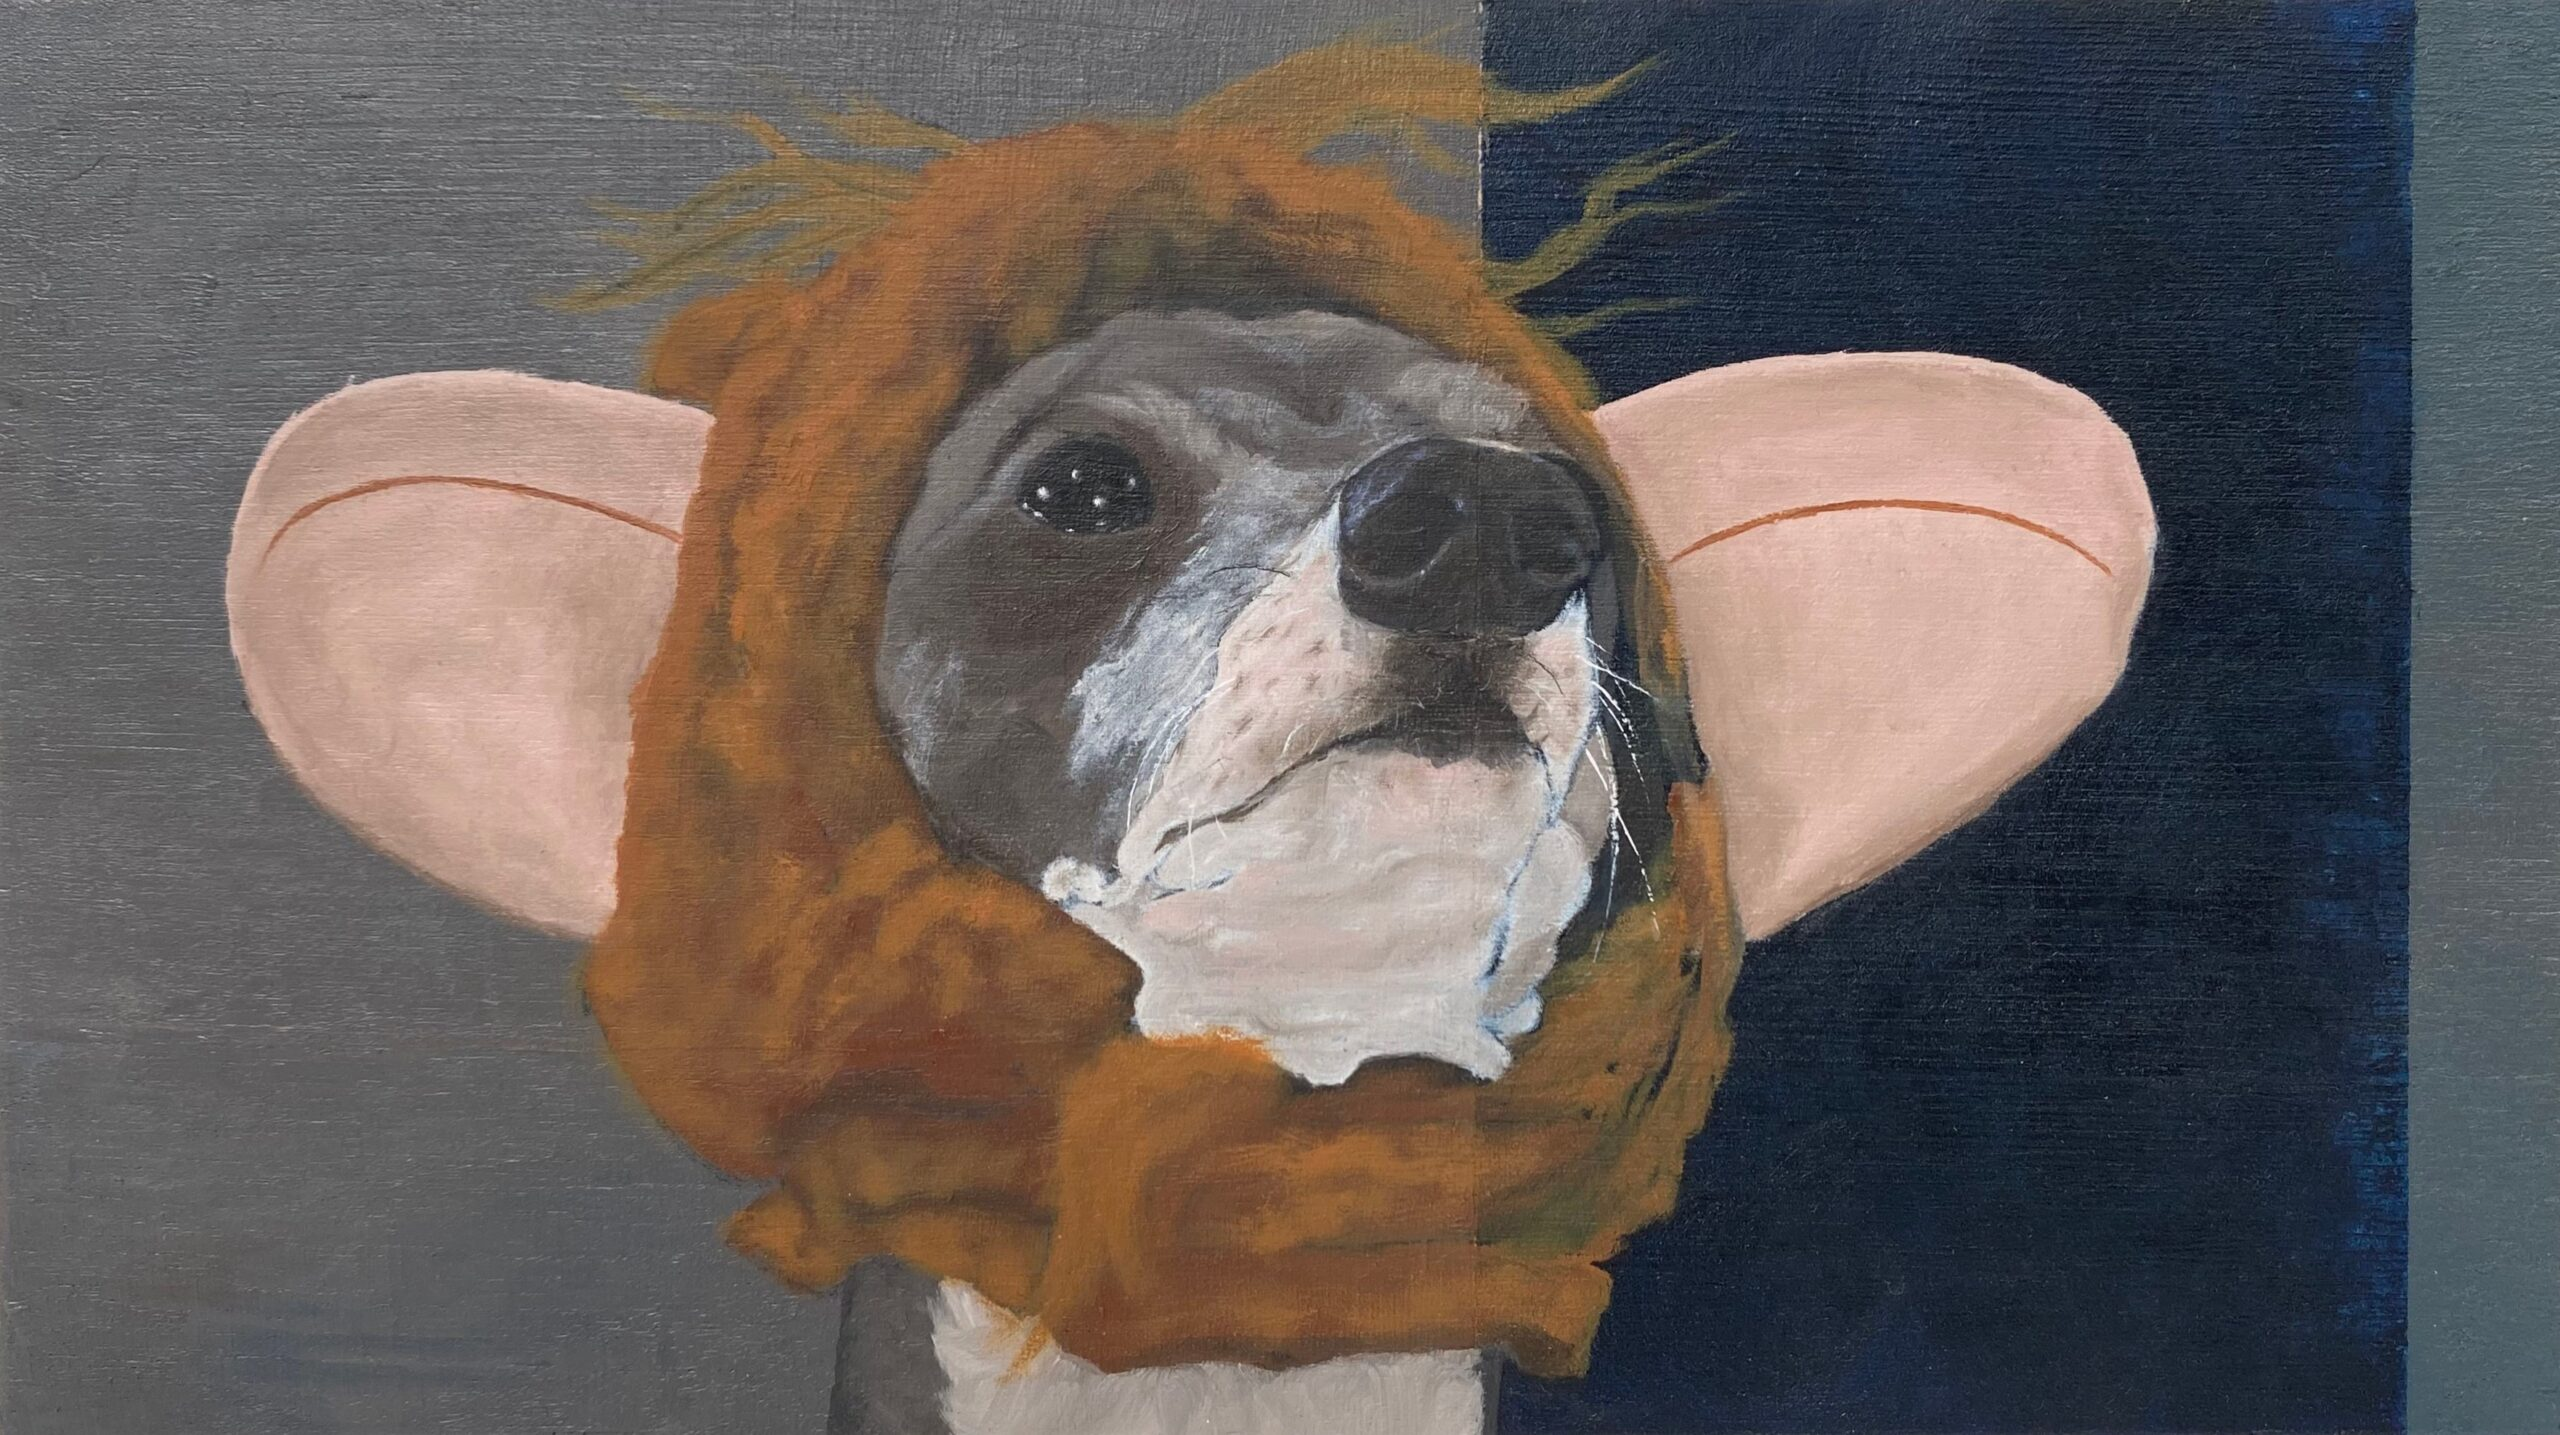 My Dogs Try On Halloween Costumes. Maddy Buttling. Jackson's Painting Prize.